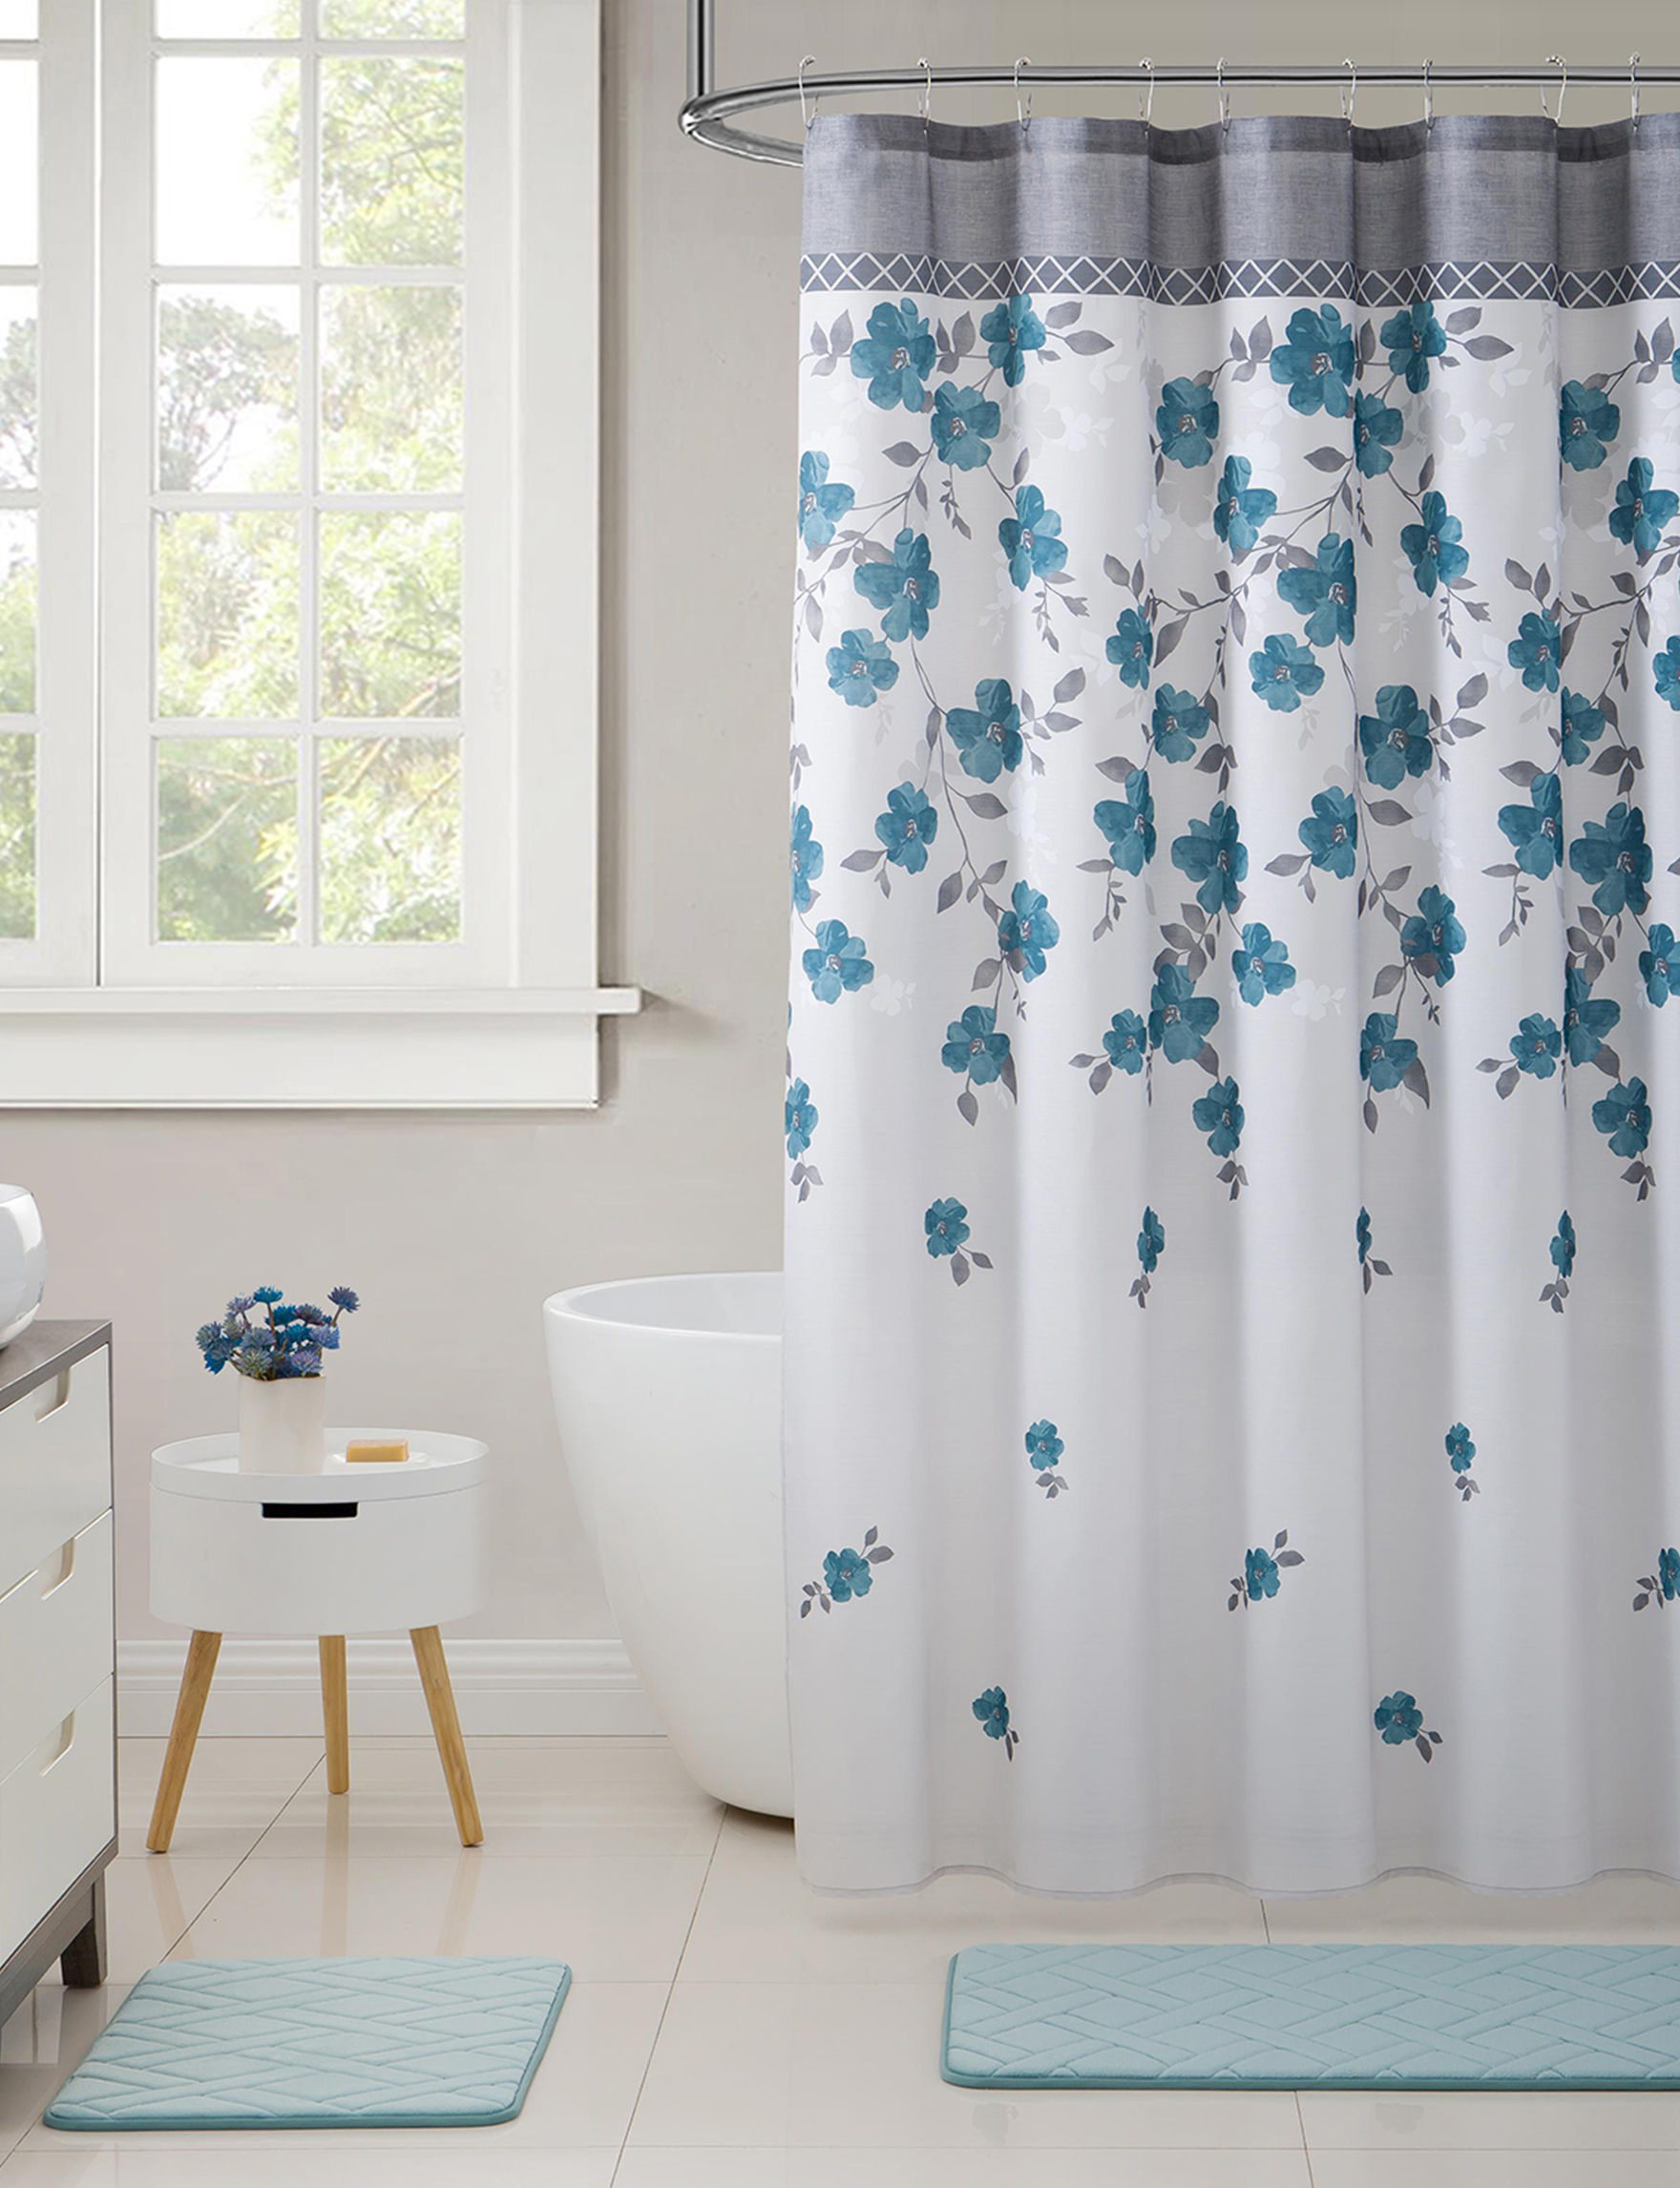 VCNY Home Blue Multi Bath Accessories Bath Rugs & Mats Shower Curtains & Hooks